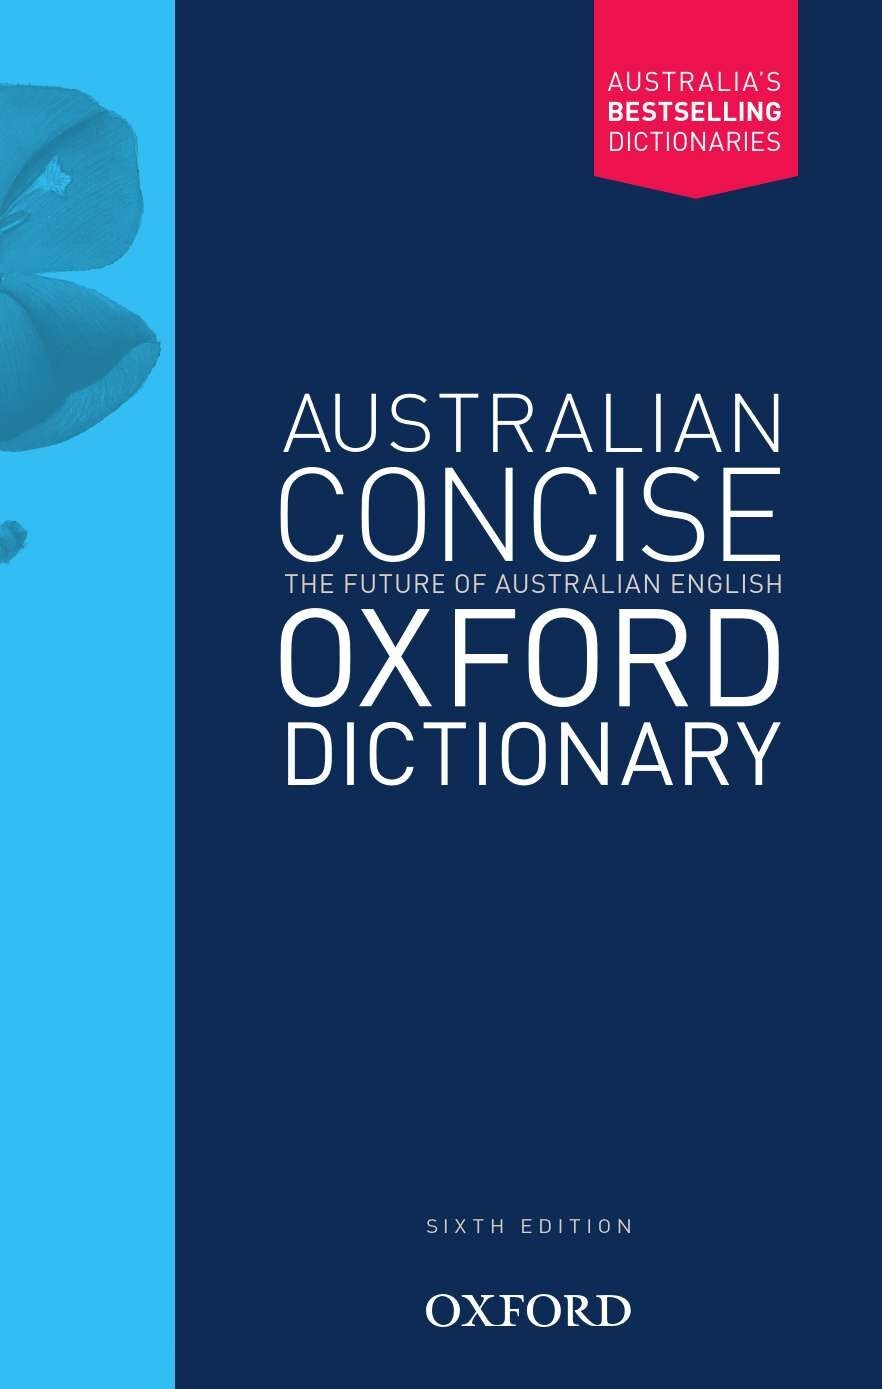 Australian Concise Oxford Dictionary Paperback 6E